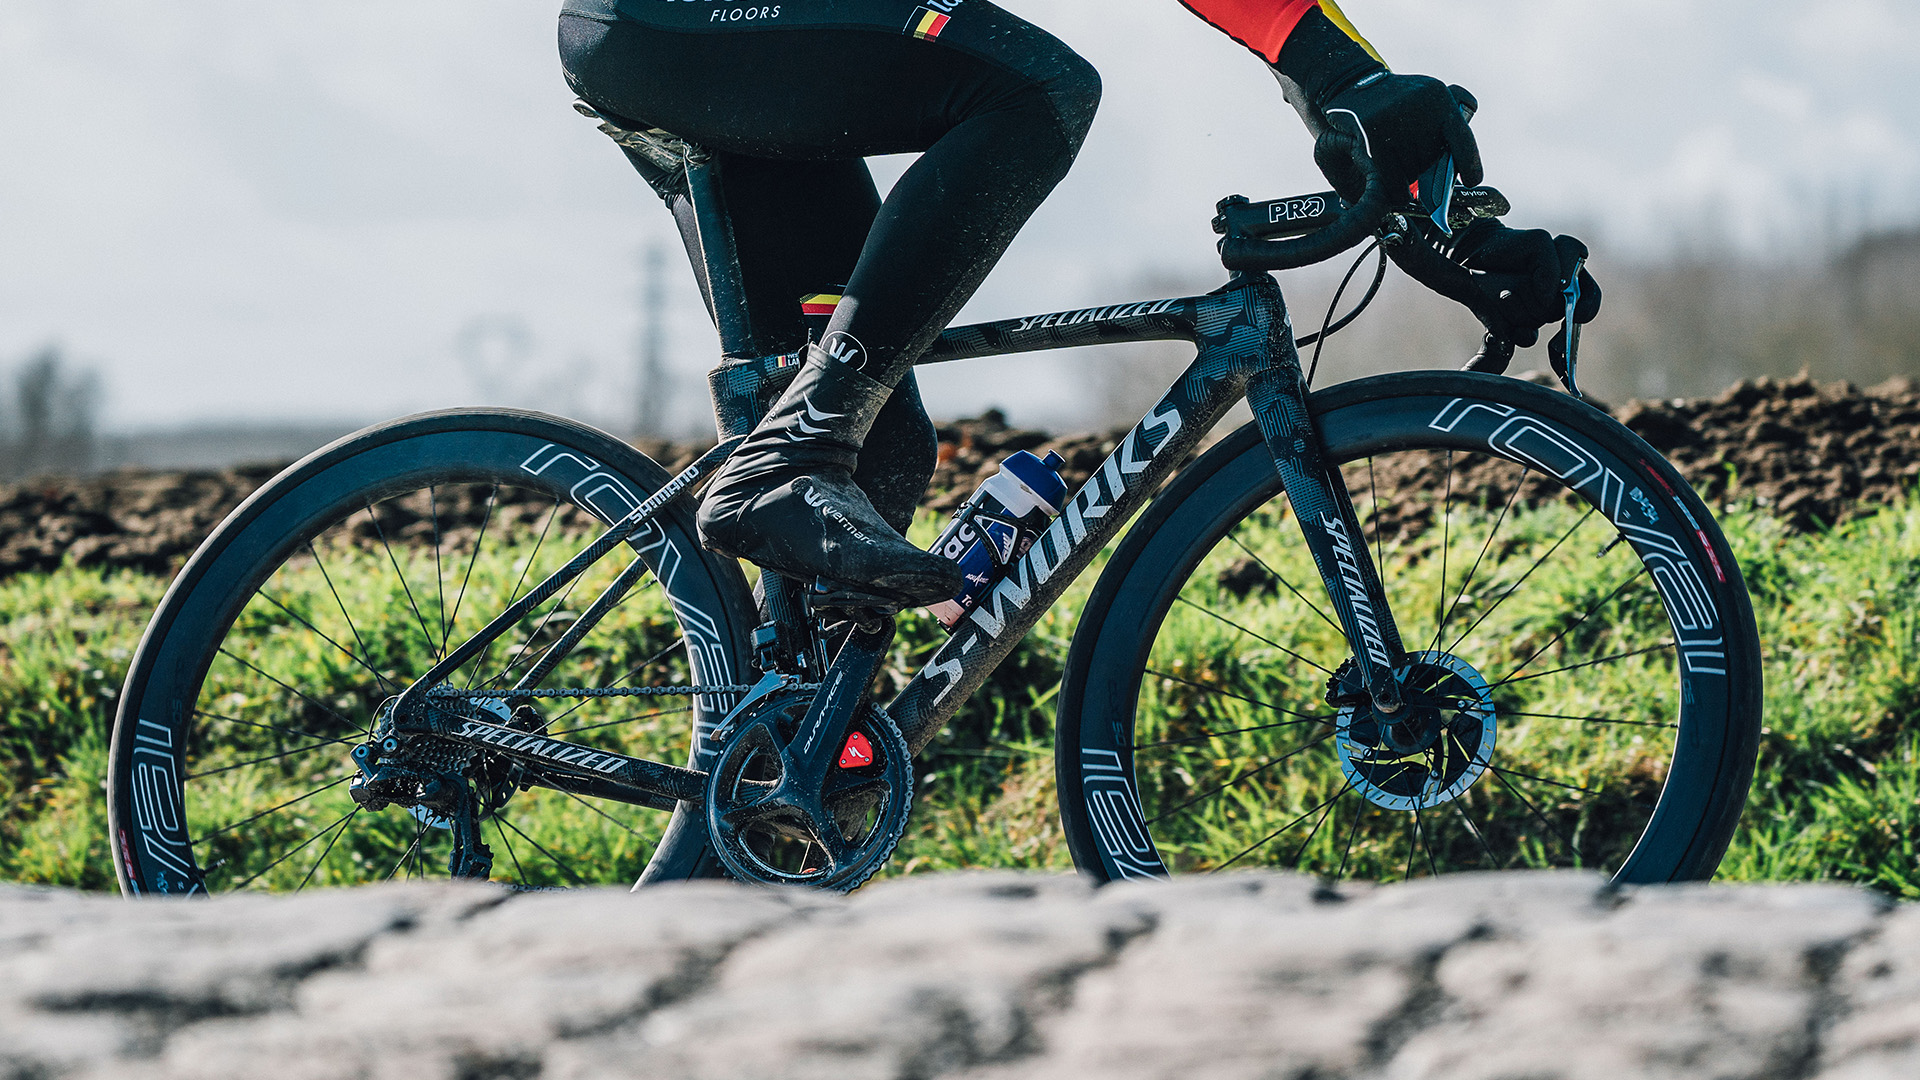 Best Road Bike 2020 Serious But Affordable Carbon And Steel Bicycles T3